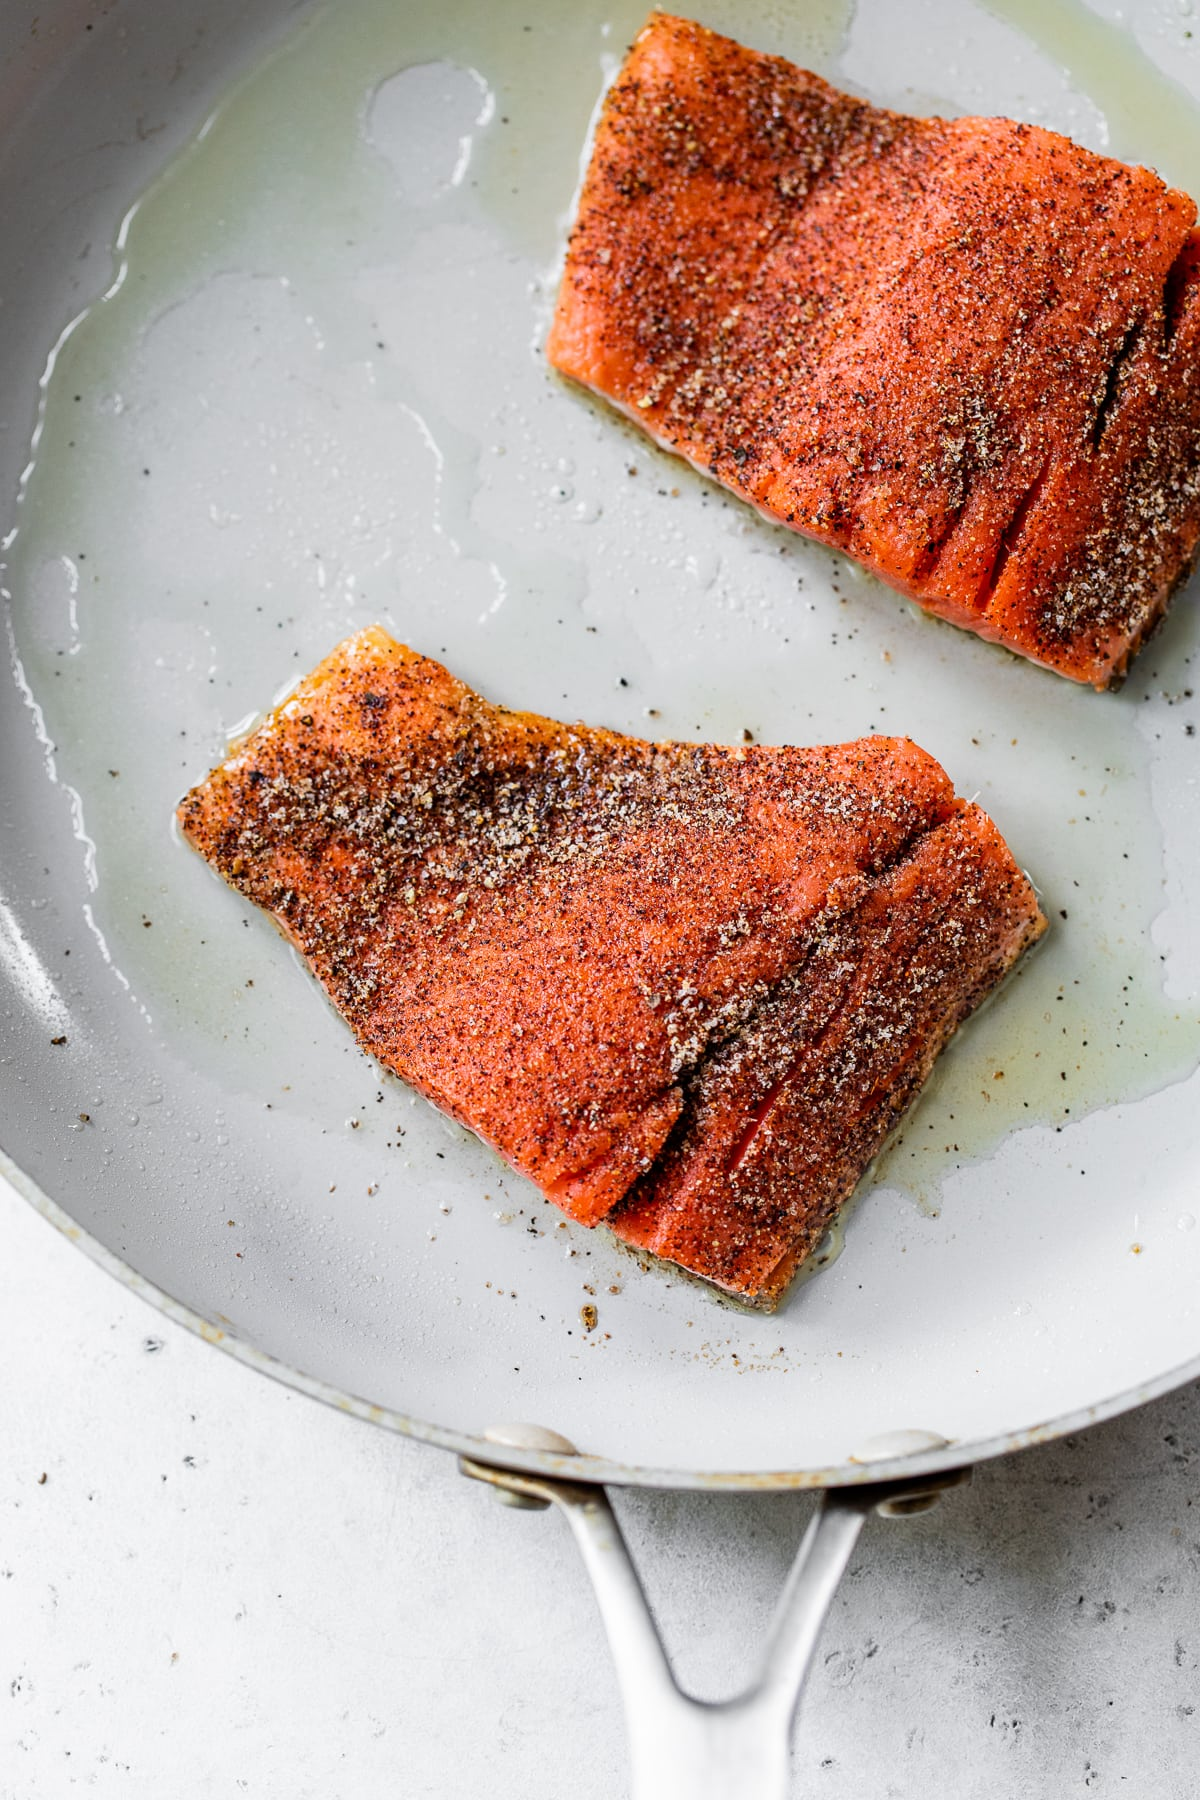 Salmon fillets cooking on a skillet.